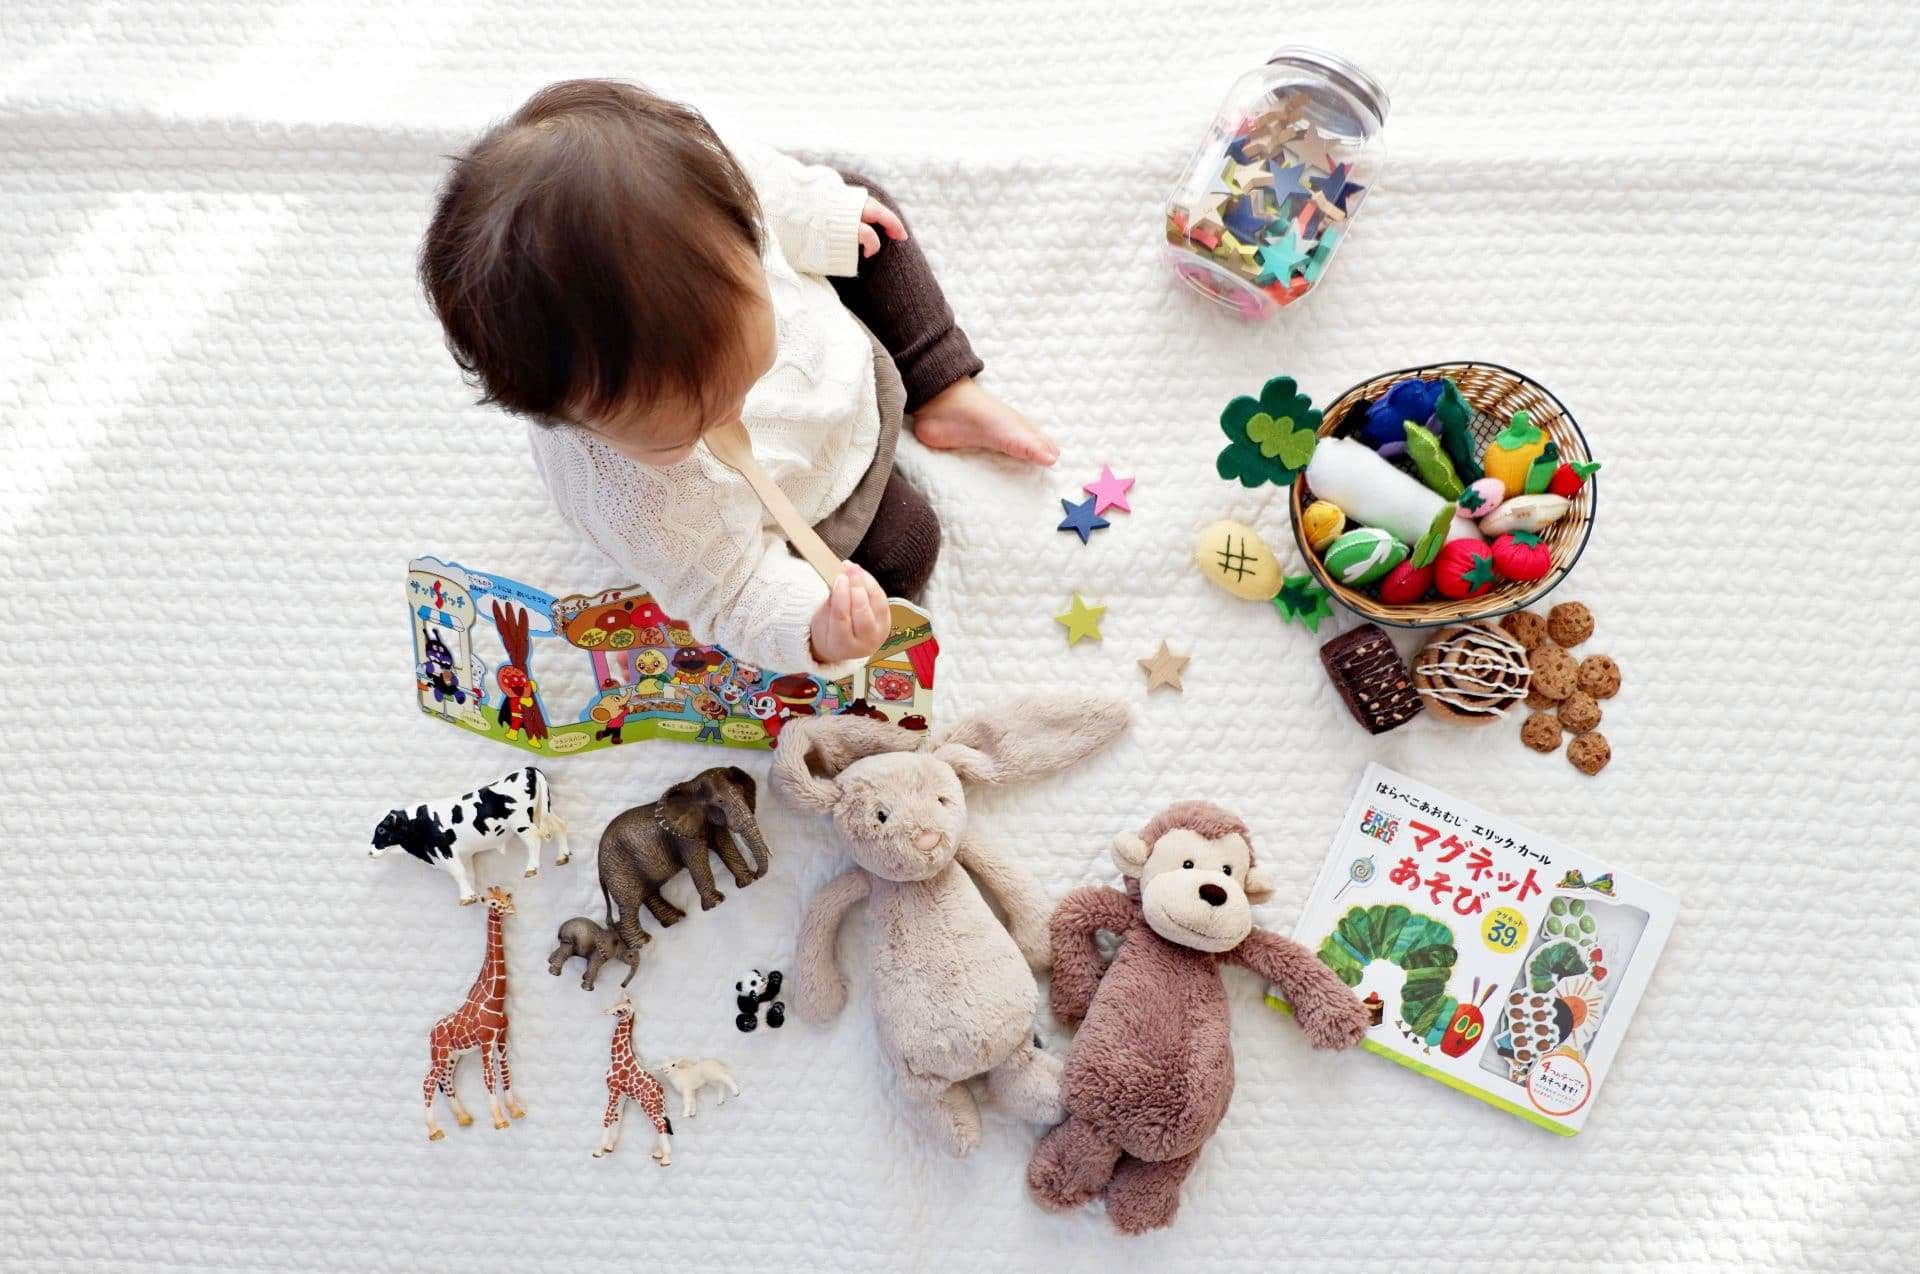 baby playing with toys